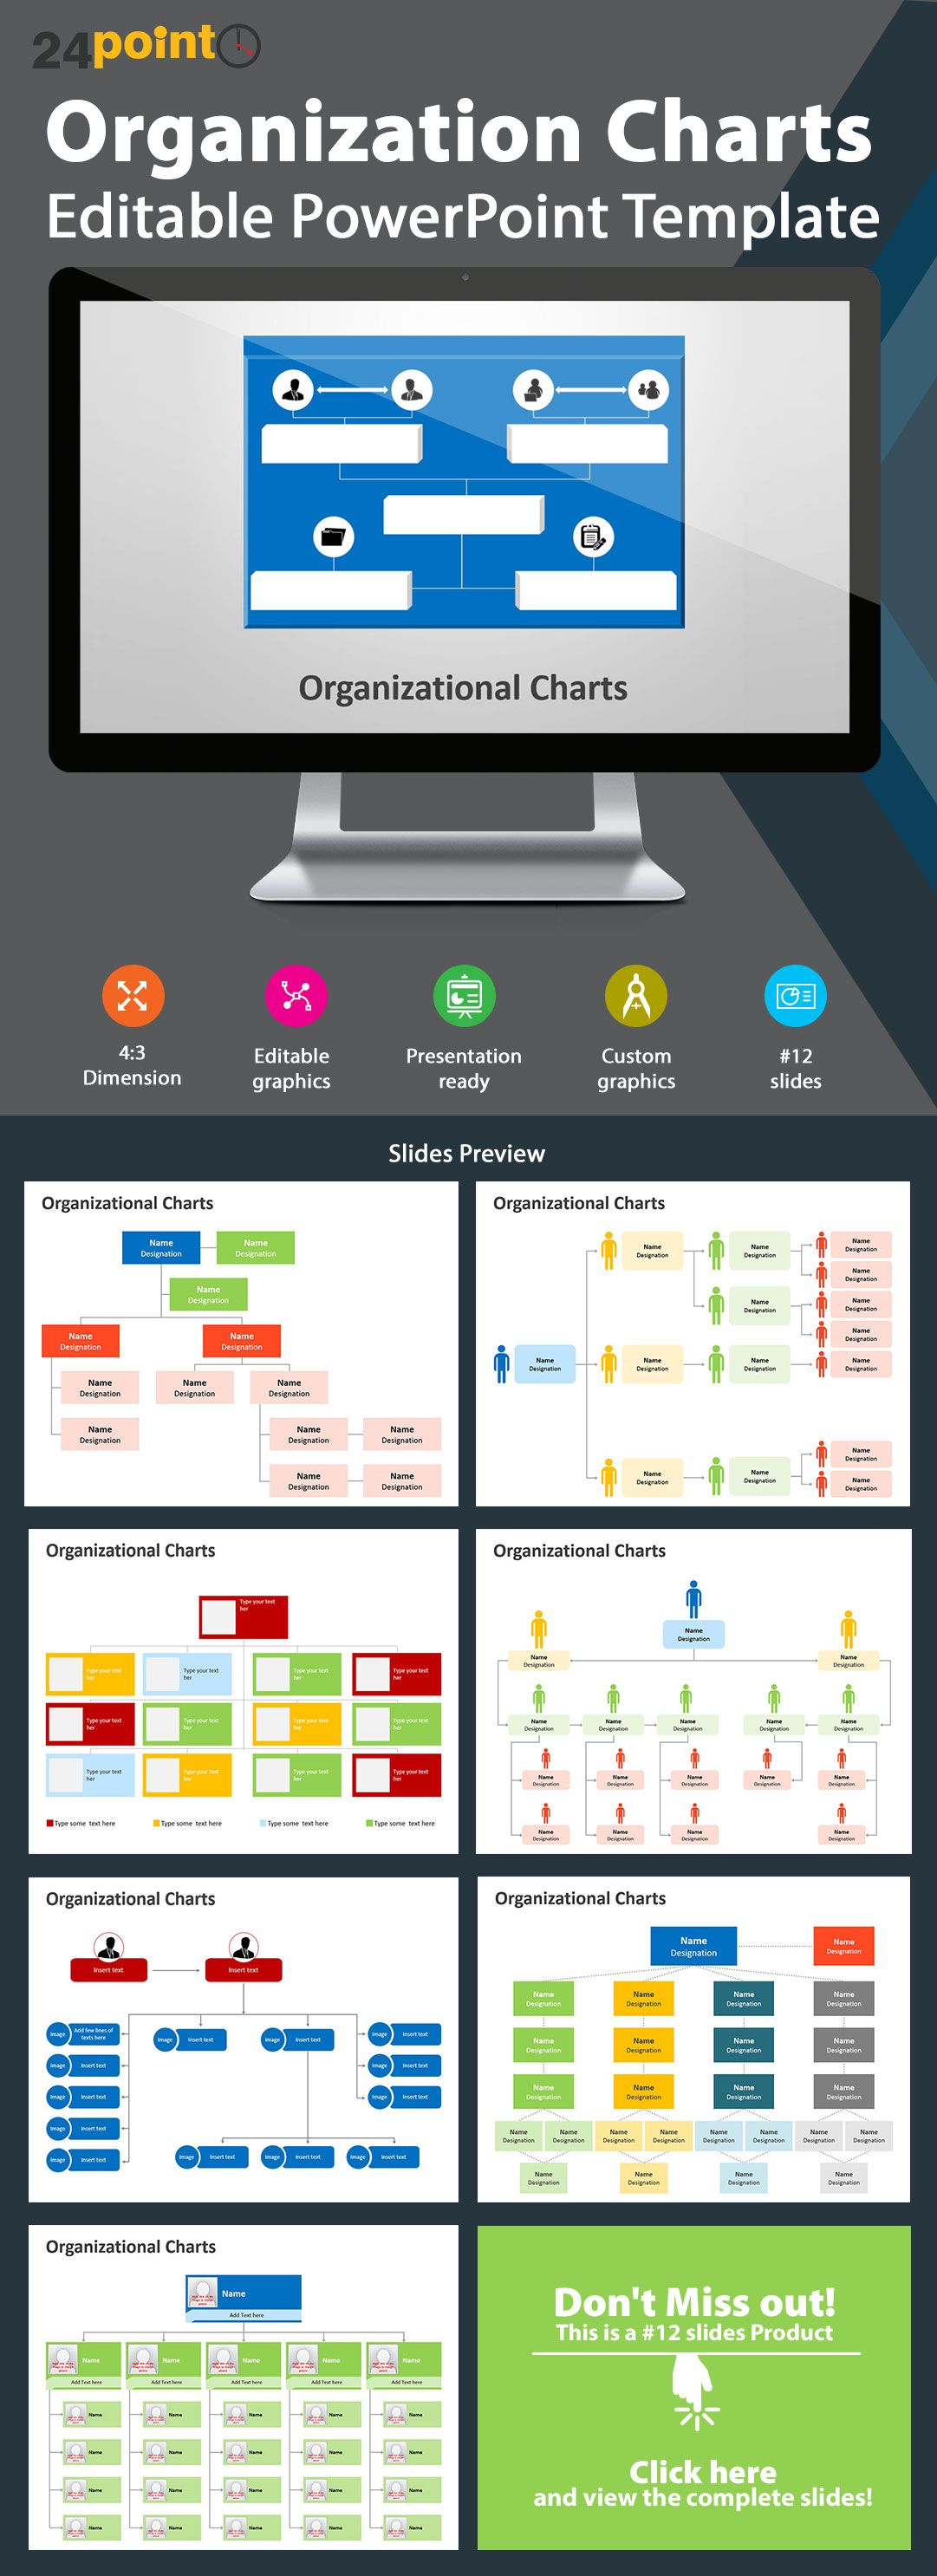 Integrate this template into all presentations related to editable powerpoint template organization charts integrate this template toneelgroepblik Images